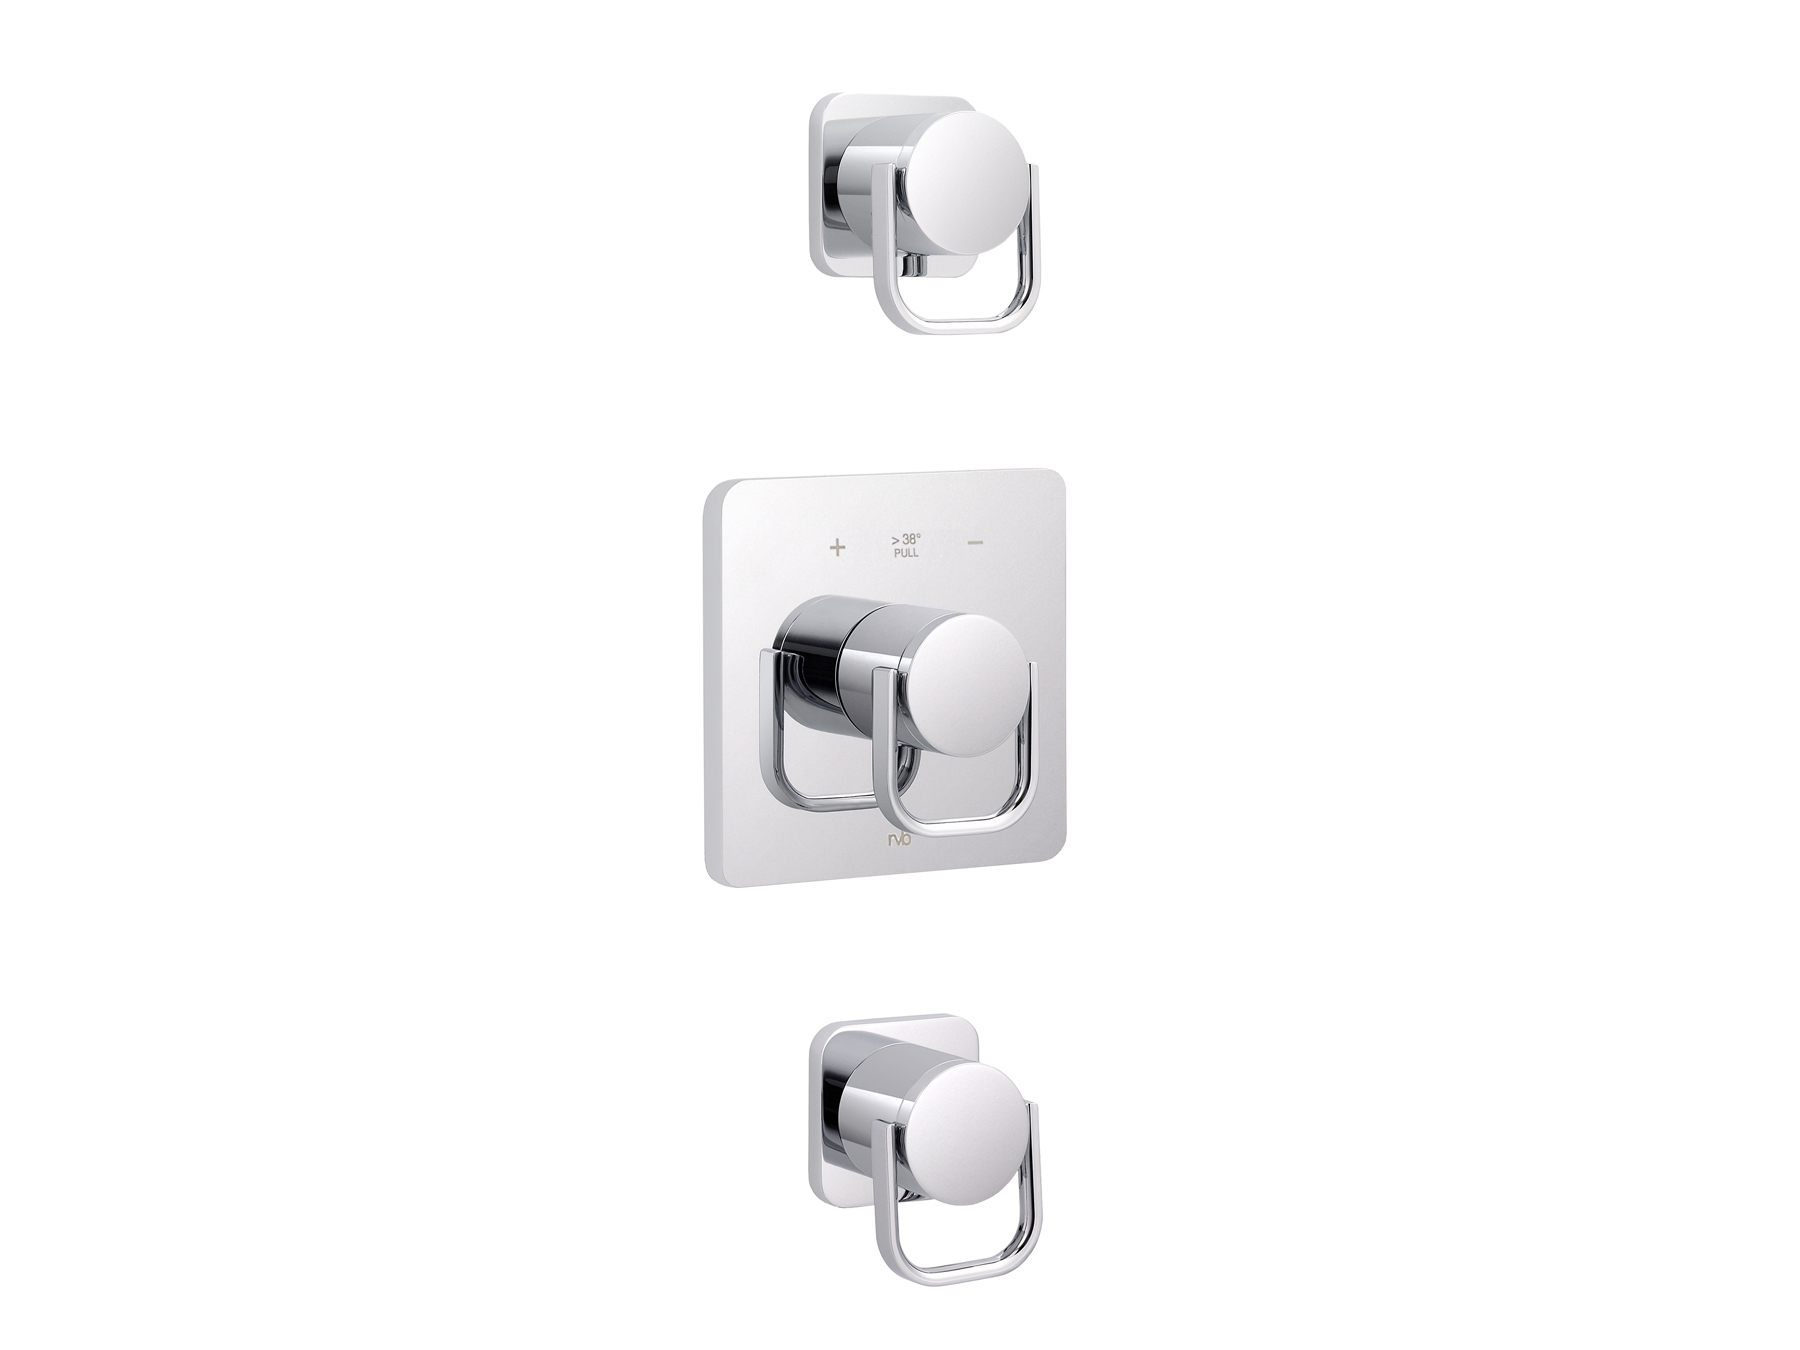 Concealed shower thermostat with 2 valves 4041.--.94